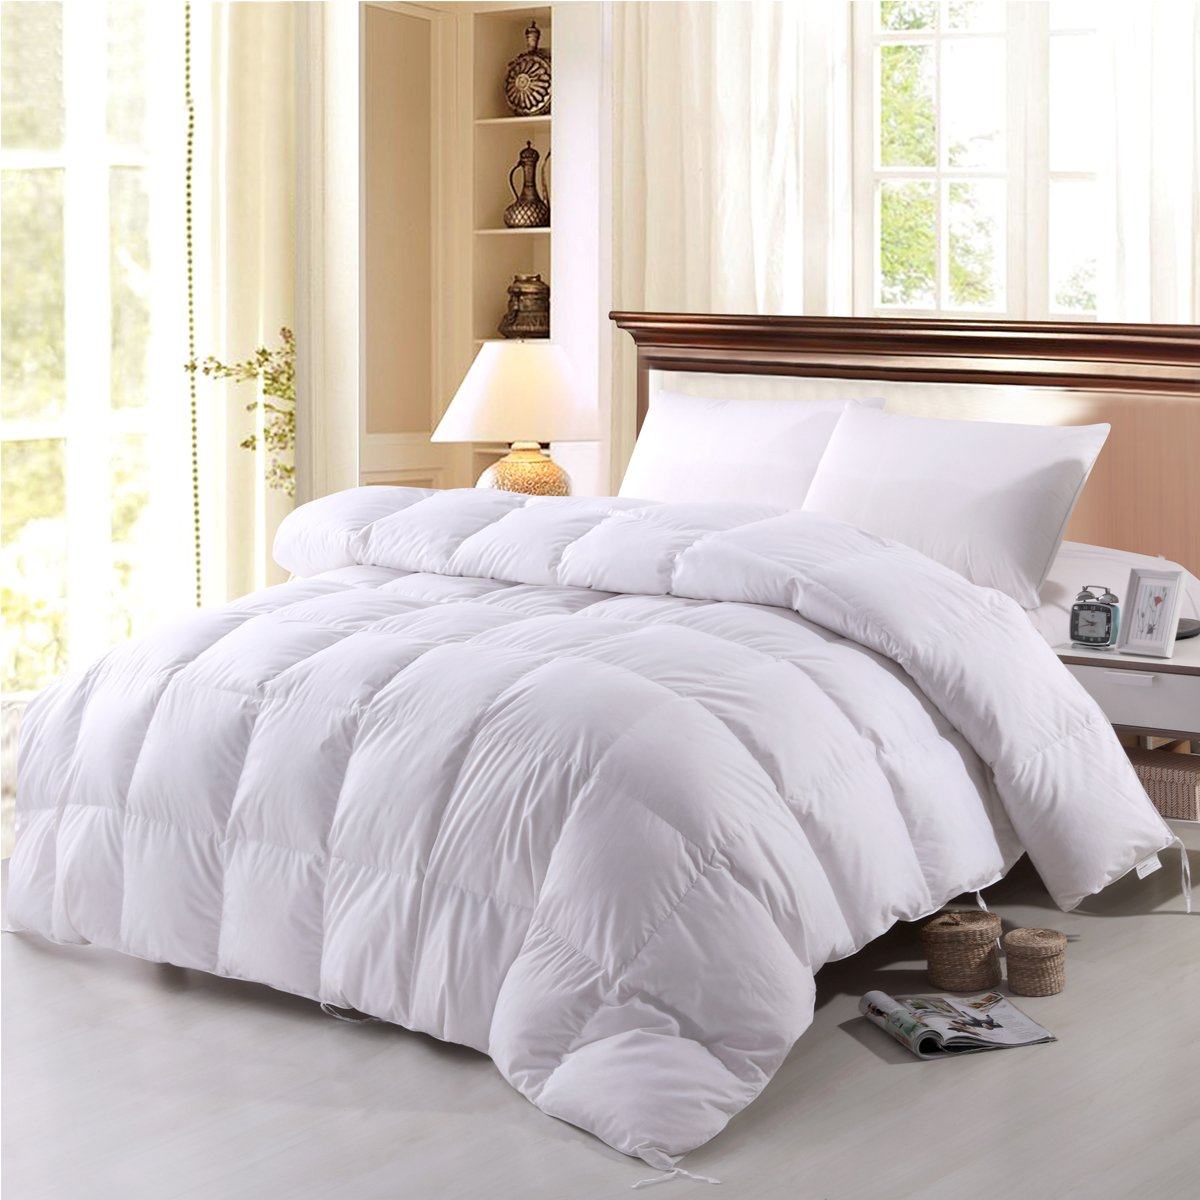 Topsleepy White Goose Down Comforter Queen Size,Cotton Shell with Corner Tabs, 750 Fill Power,Box Stitched Bedding Comforter,Lightweight, Hypo-Allergenic (Queen Size 88-by-88 inch)